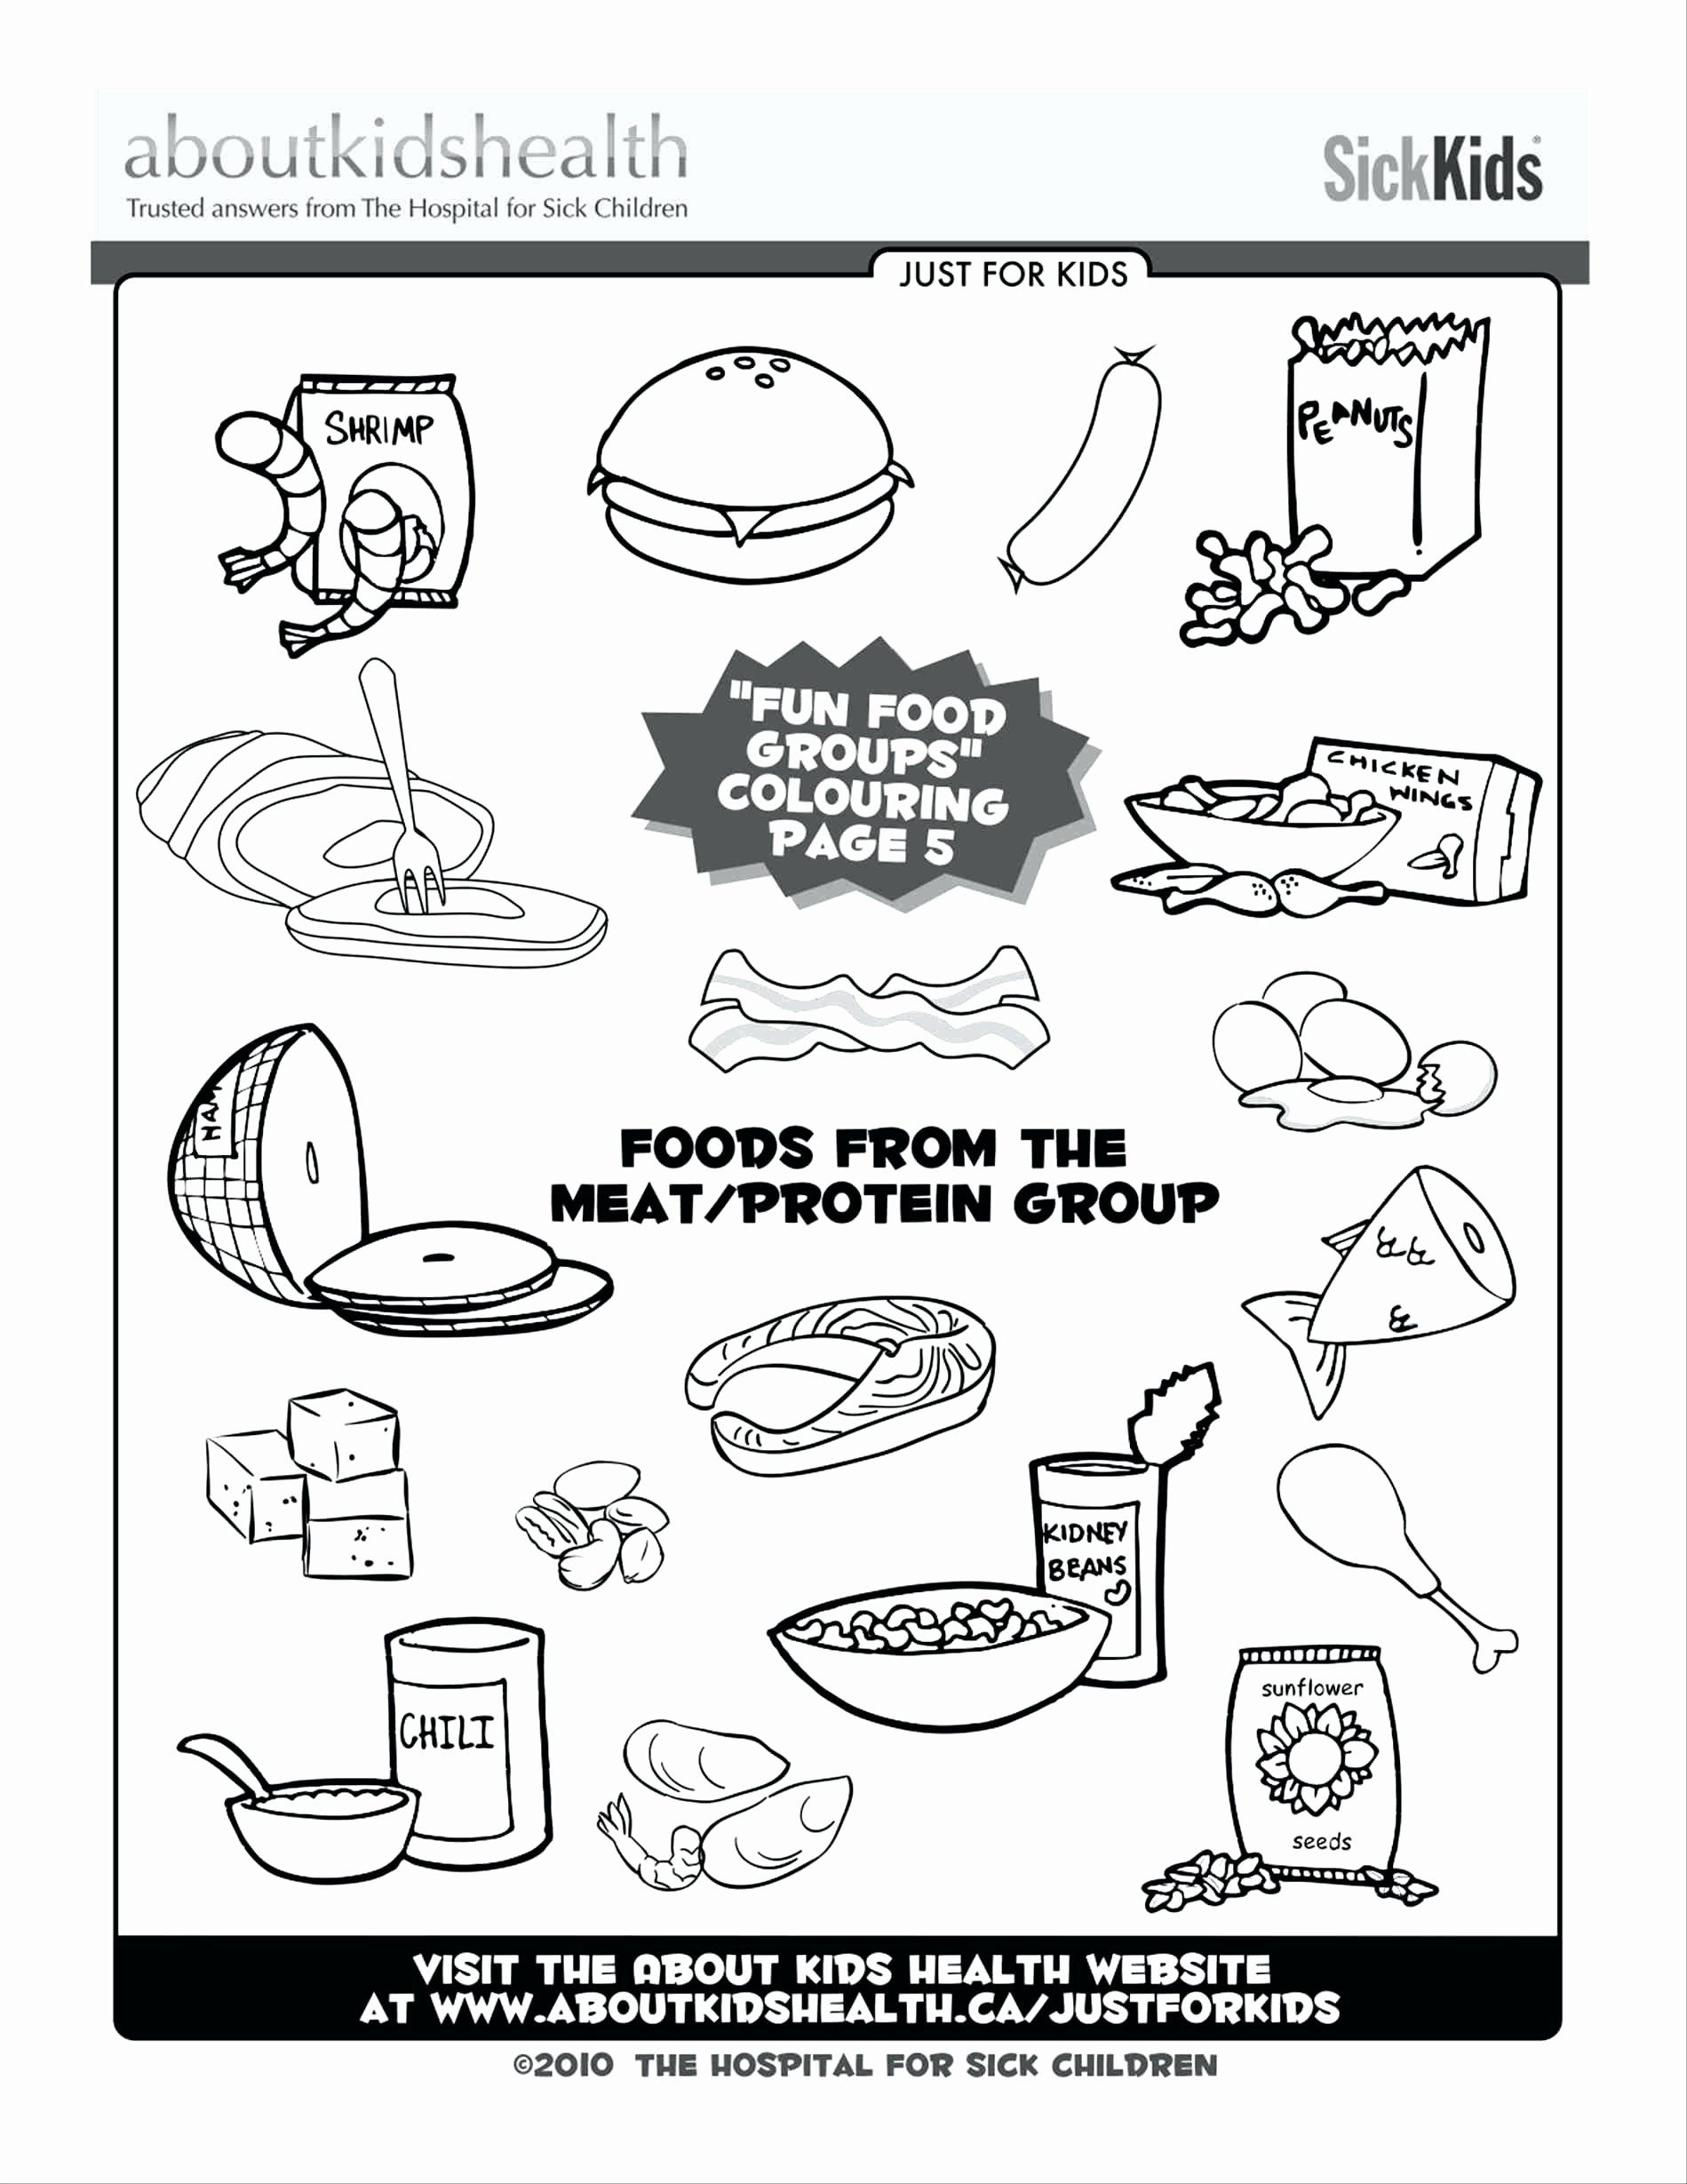 Chicken Nuggets Coloring Page Inspirational Of My Plate Coloring Page Sabadaphnecottage Ingles Ninos Baby Shower Ninos